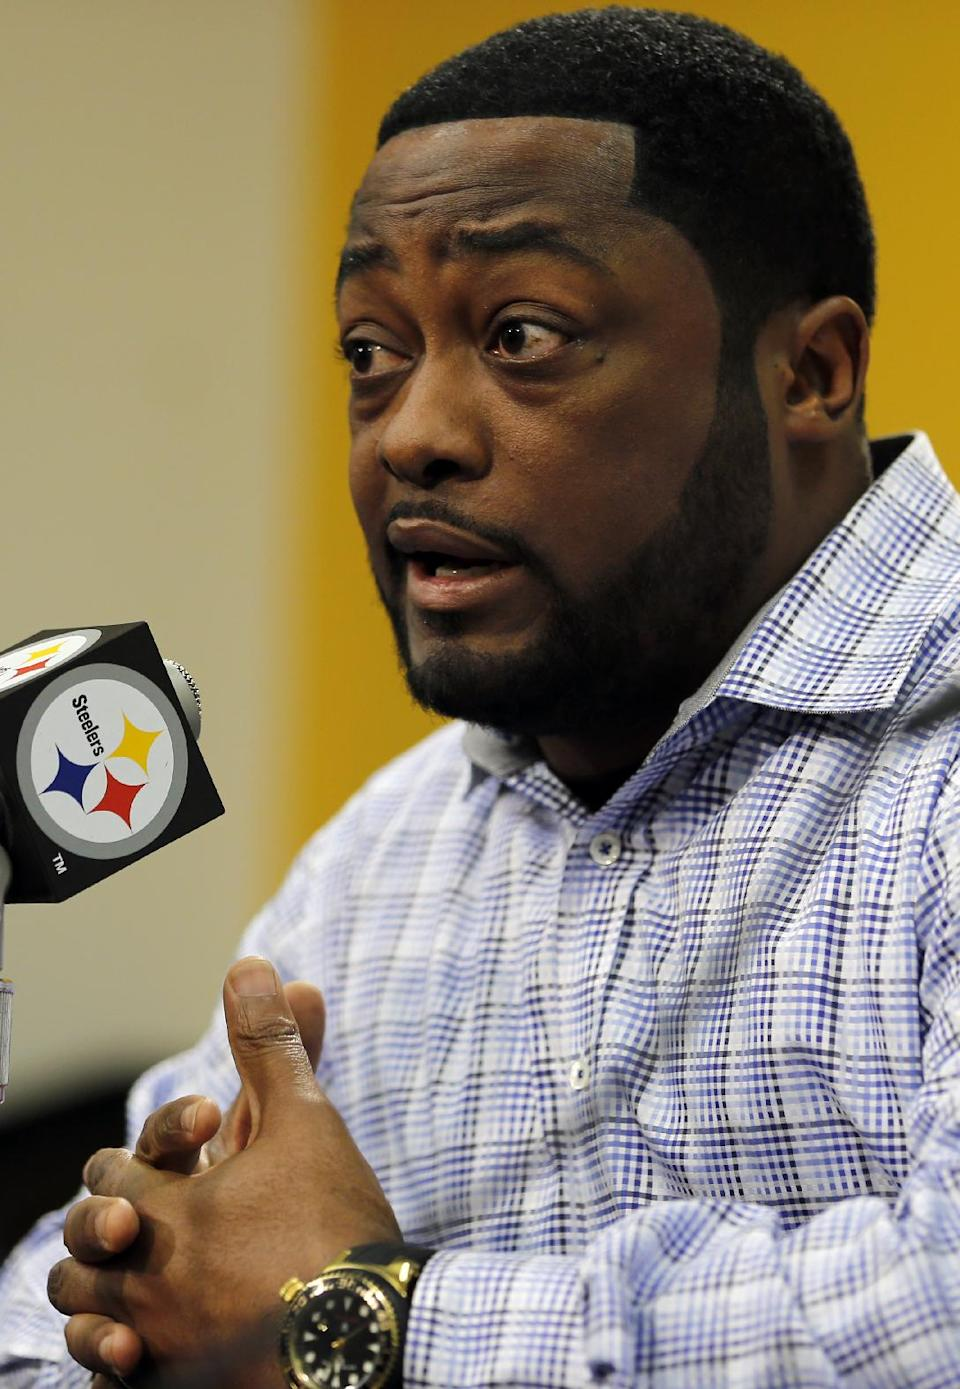 Pittsburgh Steelers head coach Mike Tomlin talks about their team's needs during a news conference on Monday, April 22, 2013 concerning the upcoming NFL football draft in Pittsburgh. (AP Photo/Keith Srakocic)